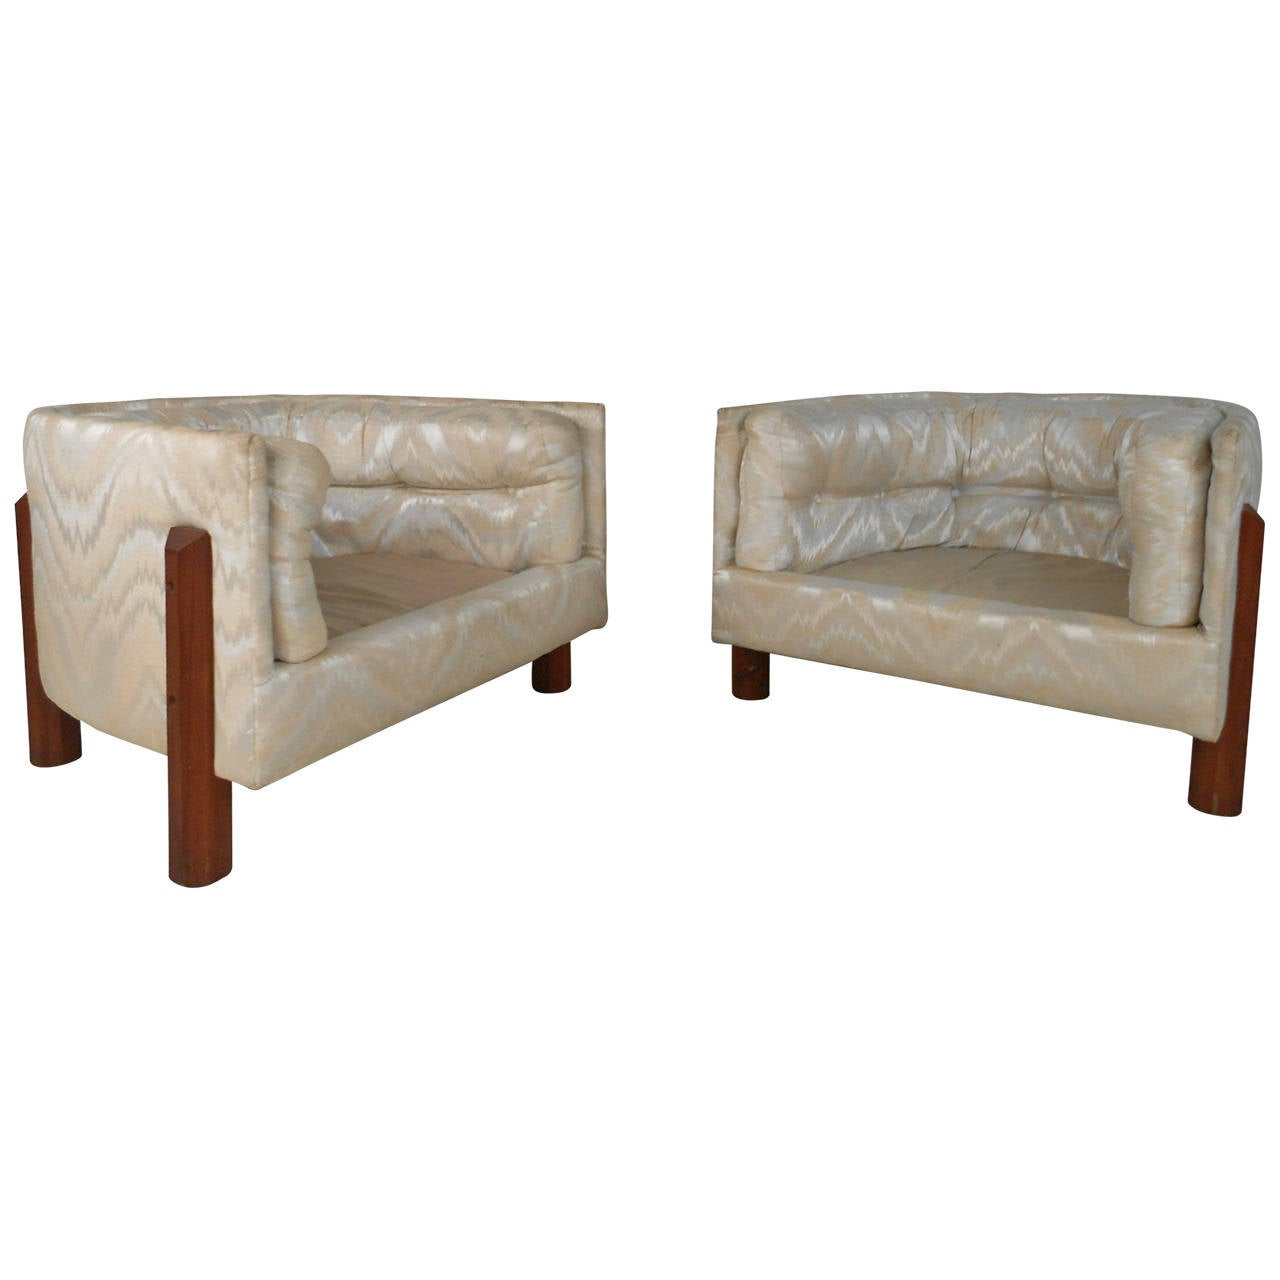 Pair of Unique Tufted Mid-Century Modern Barrel Back Chairs